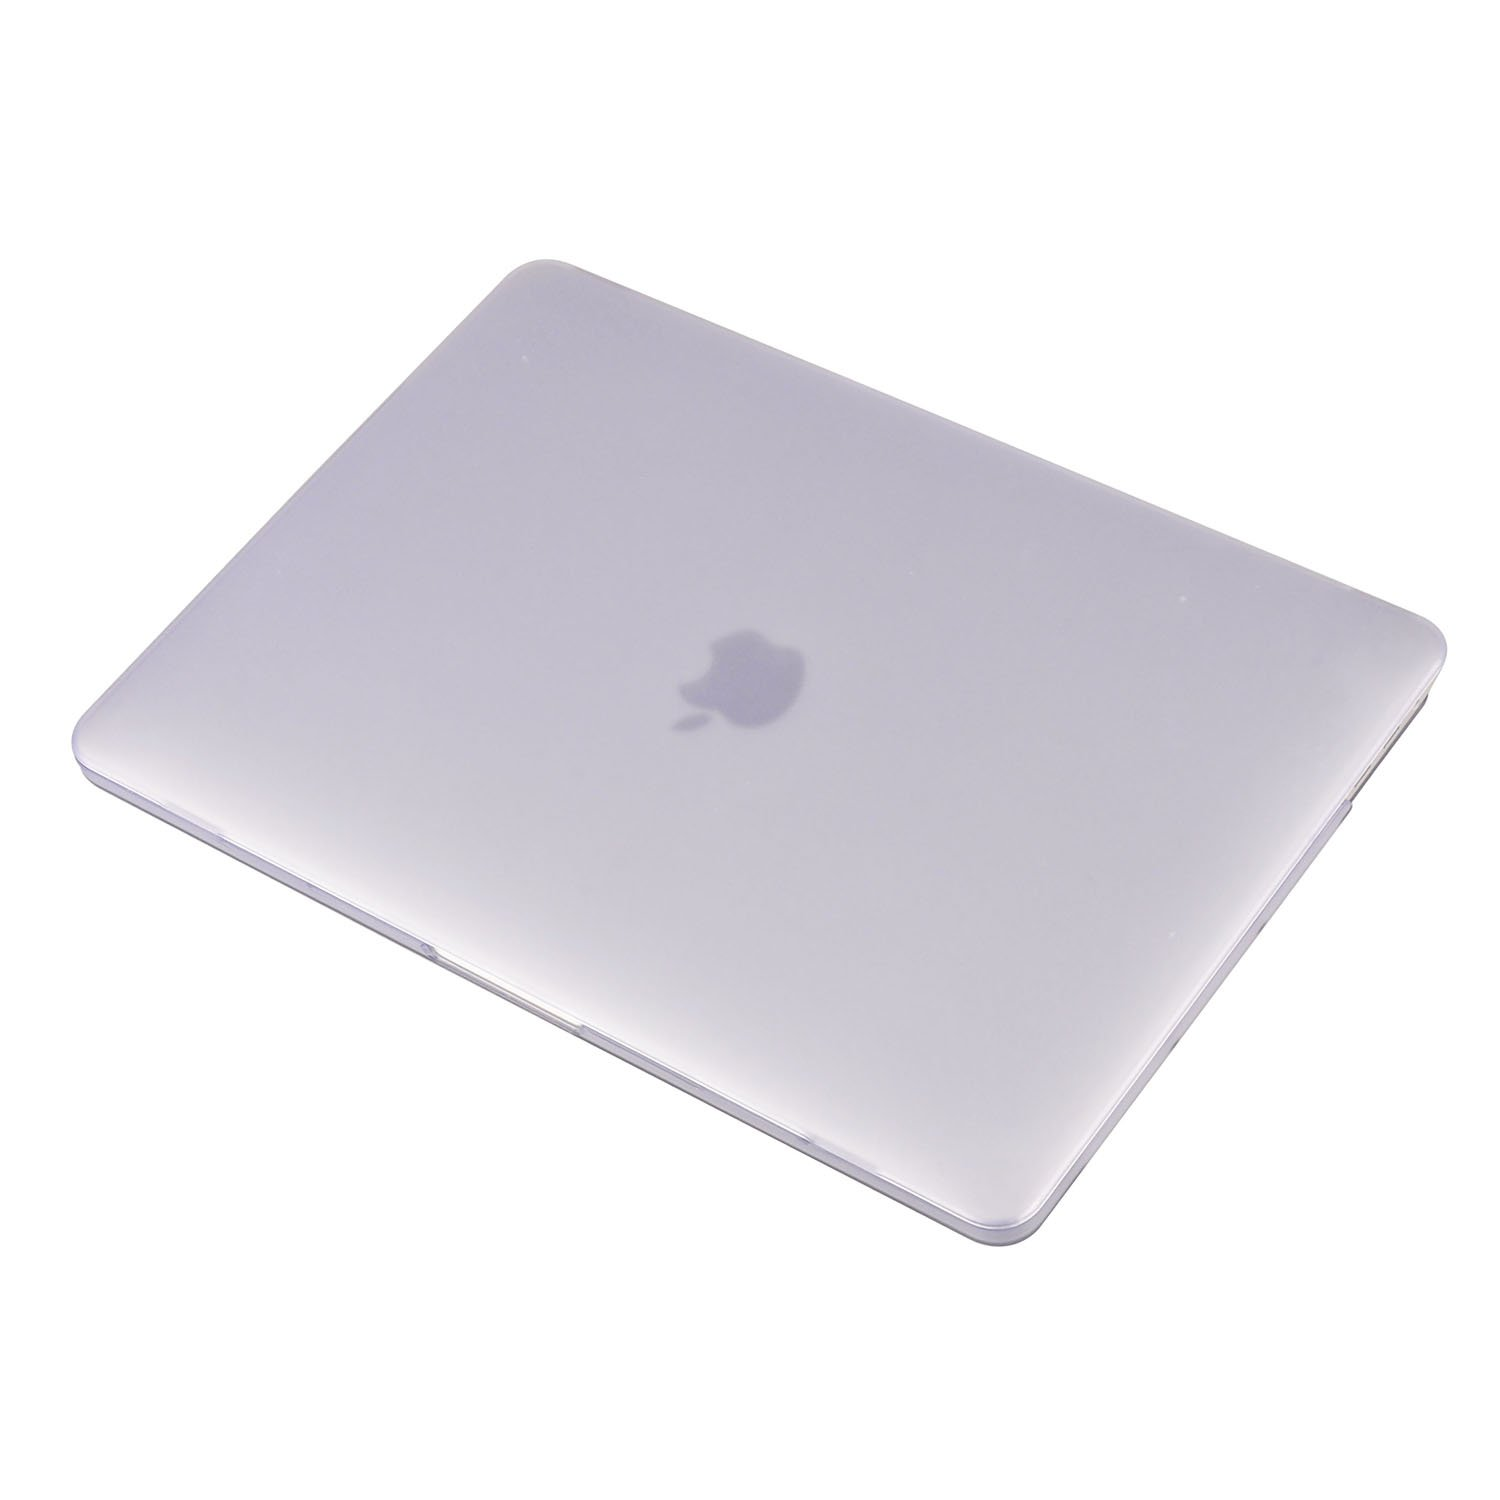 USB-C Model A2159//A1989//A1706//A1708 Frosted Clear UESWILL MacBook Pro 13 inch Case 2019 2018 2017 2016 2//4 Thunderbolt 3 ports with//without Touch Bar Matte Hard Case for MacBook Pro 13-inch